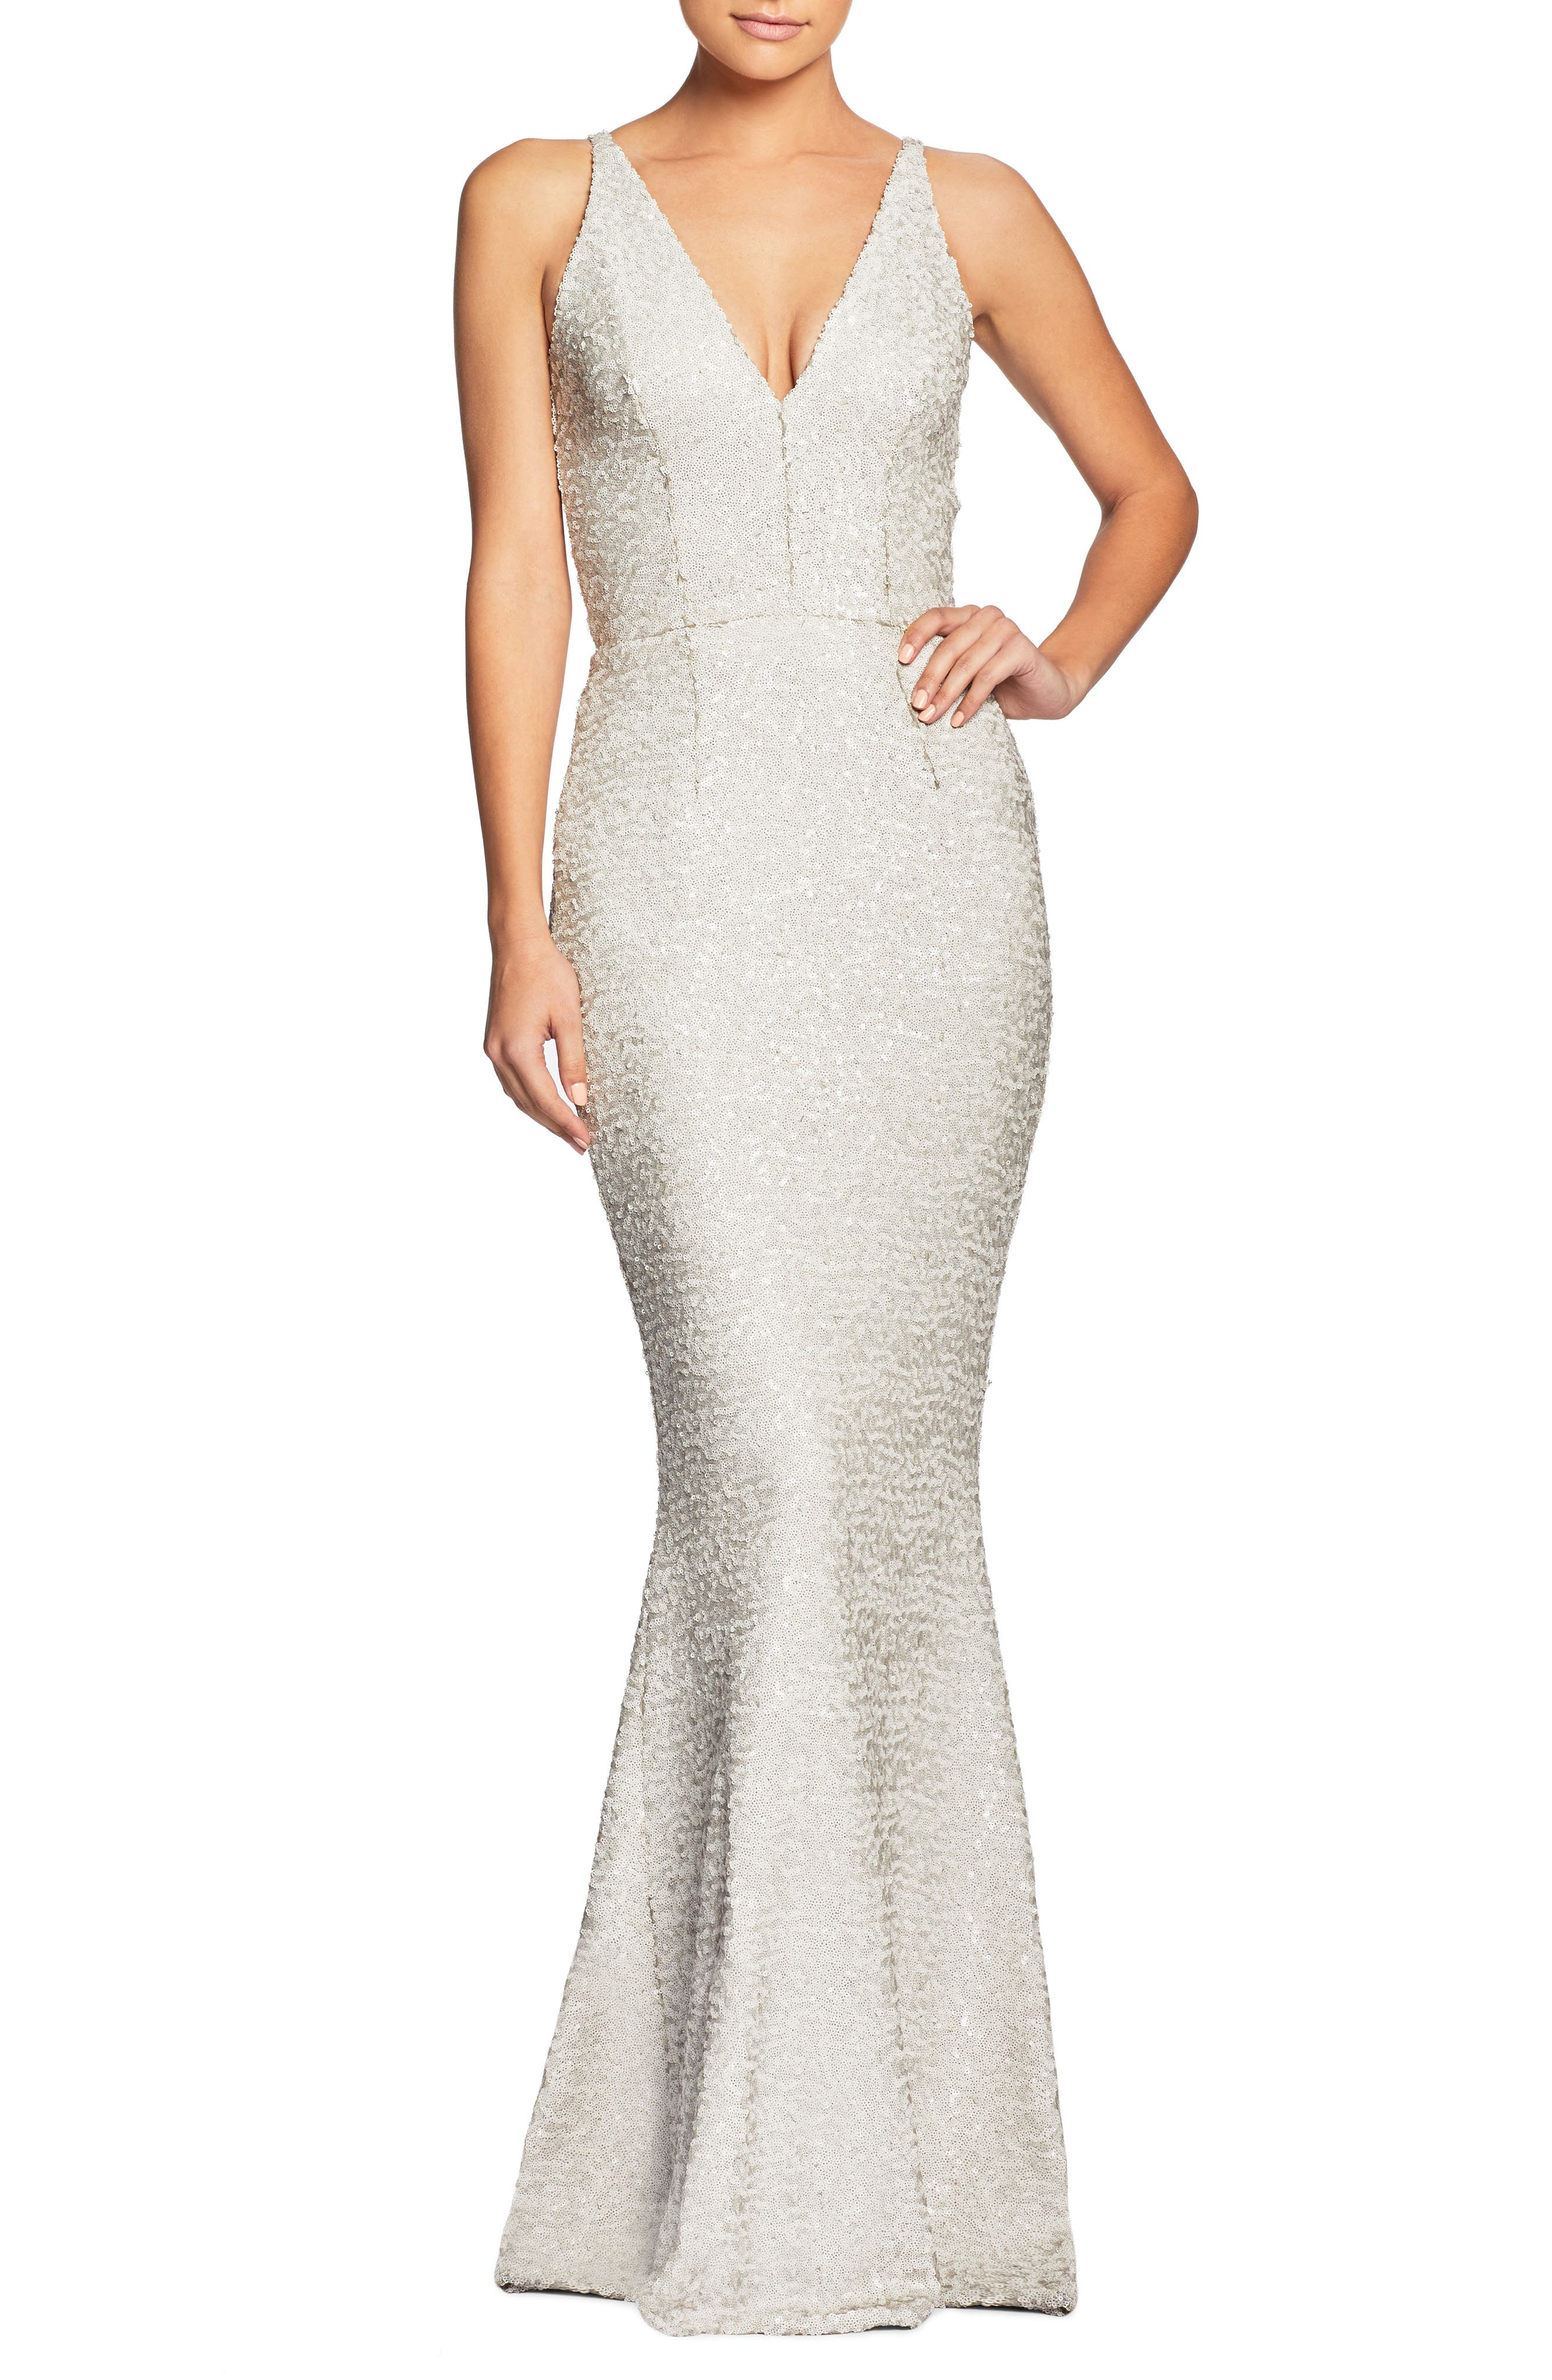 Champagne Bridesmaid Dresses with Sequence